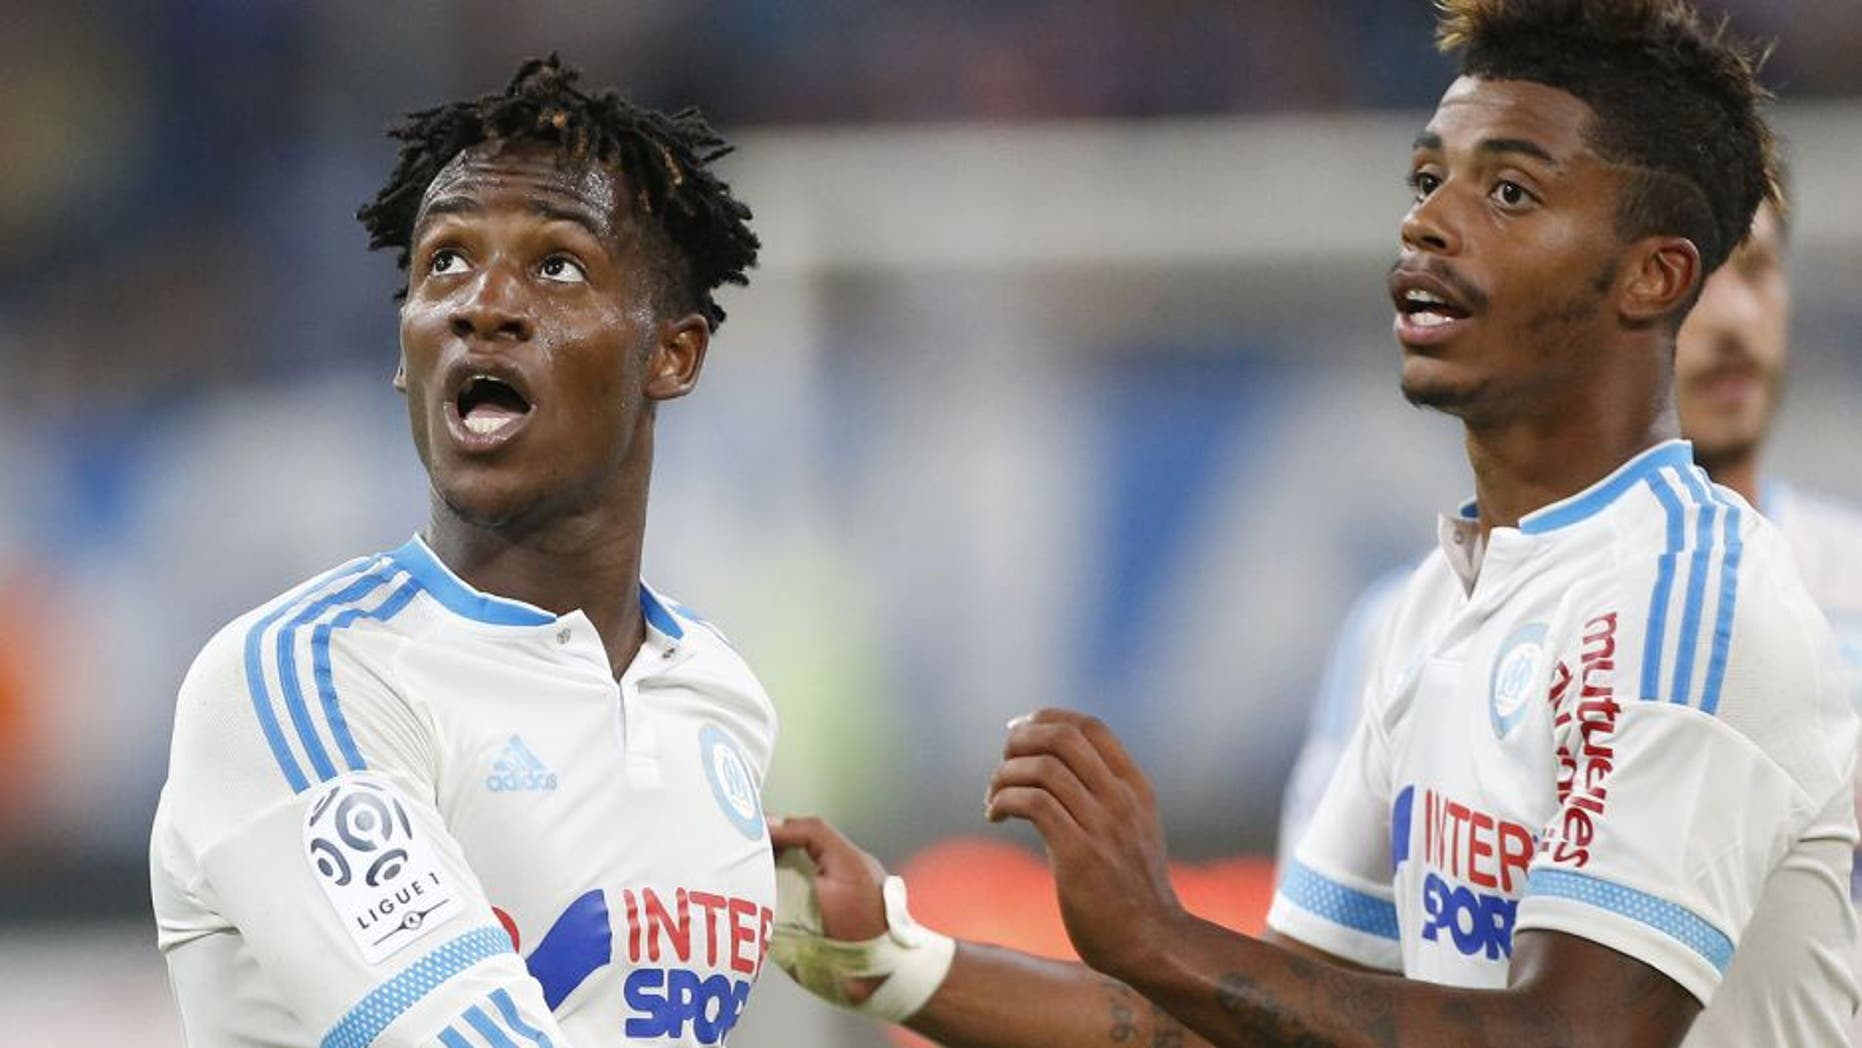 MARSEILLE - AUGUST 23: Michy Batshuayi of OM celebrates his goal with Mario Lemina of OM during the French Ligue 1 match between Olympique de Marseille (OM) and Troyes ESTAC at New Stade Velodrome on August 23, 2015 in Marseille, France. (Photo by Jean Catuffe/Getty Images)